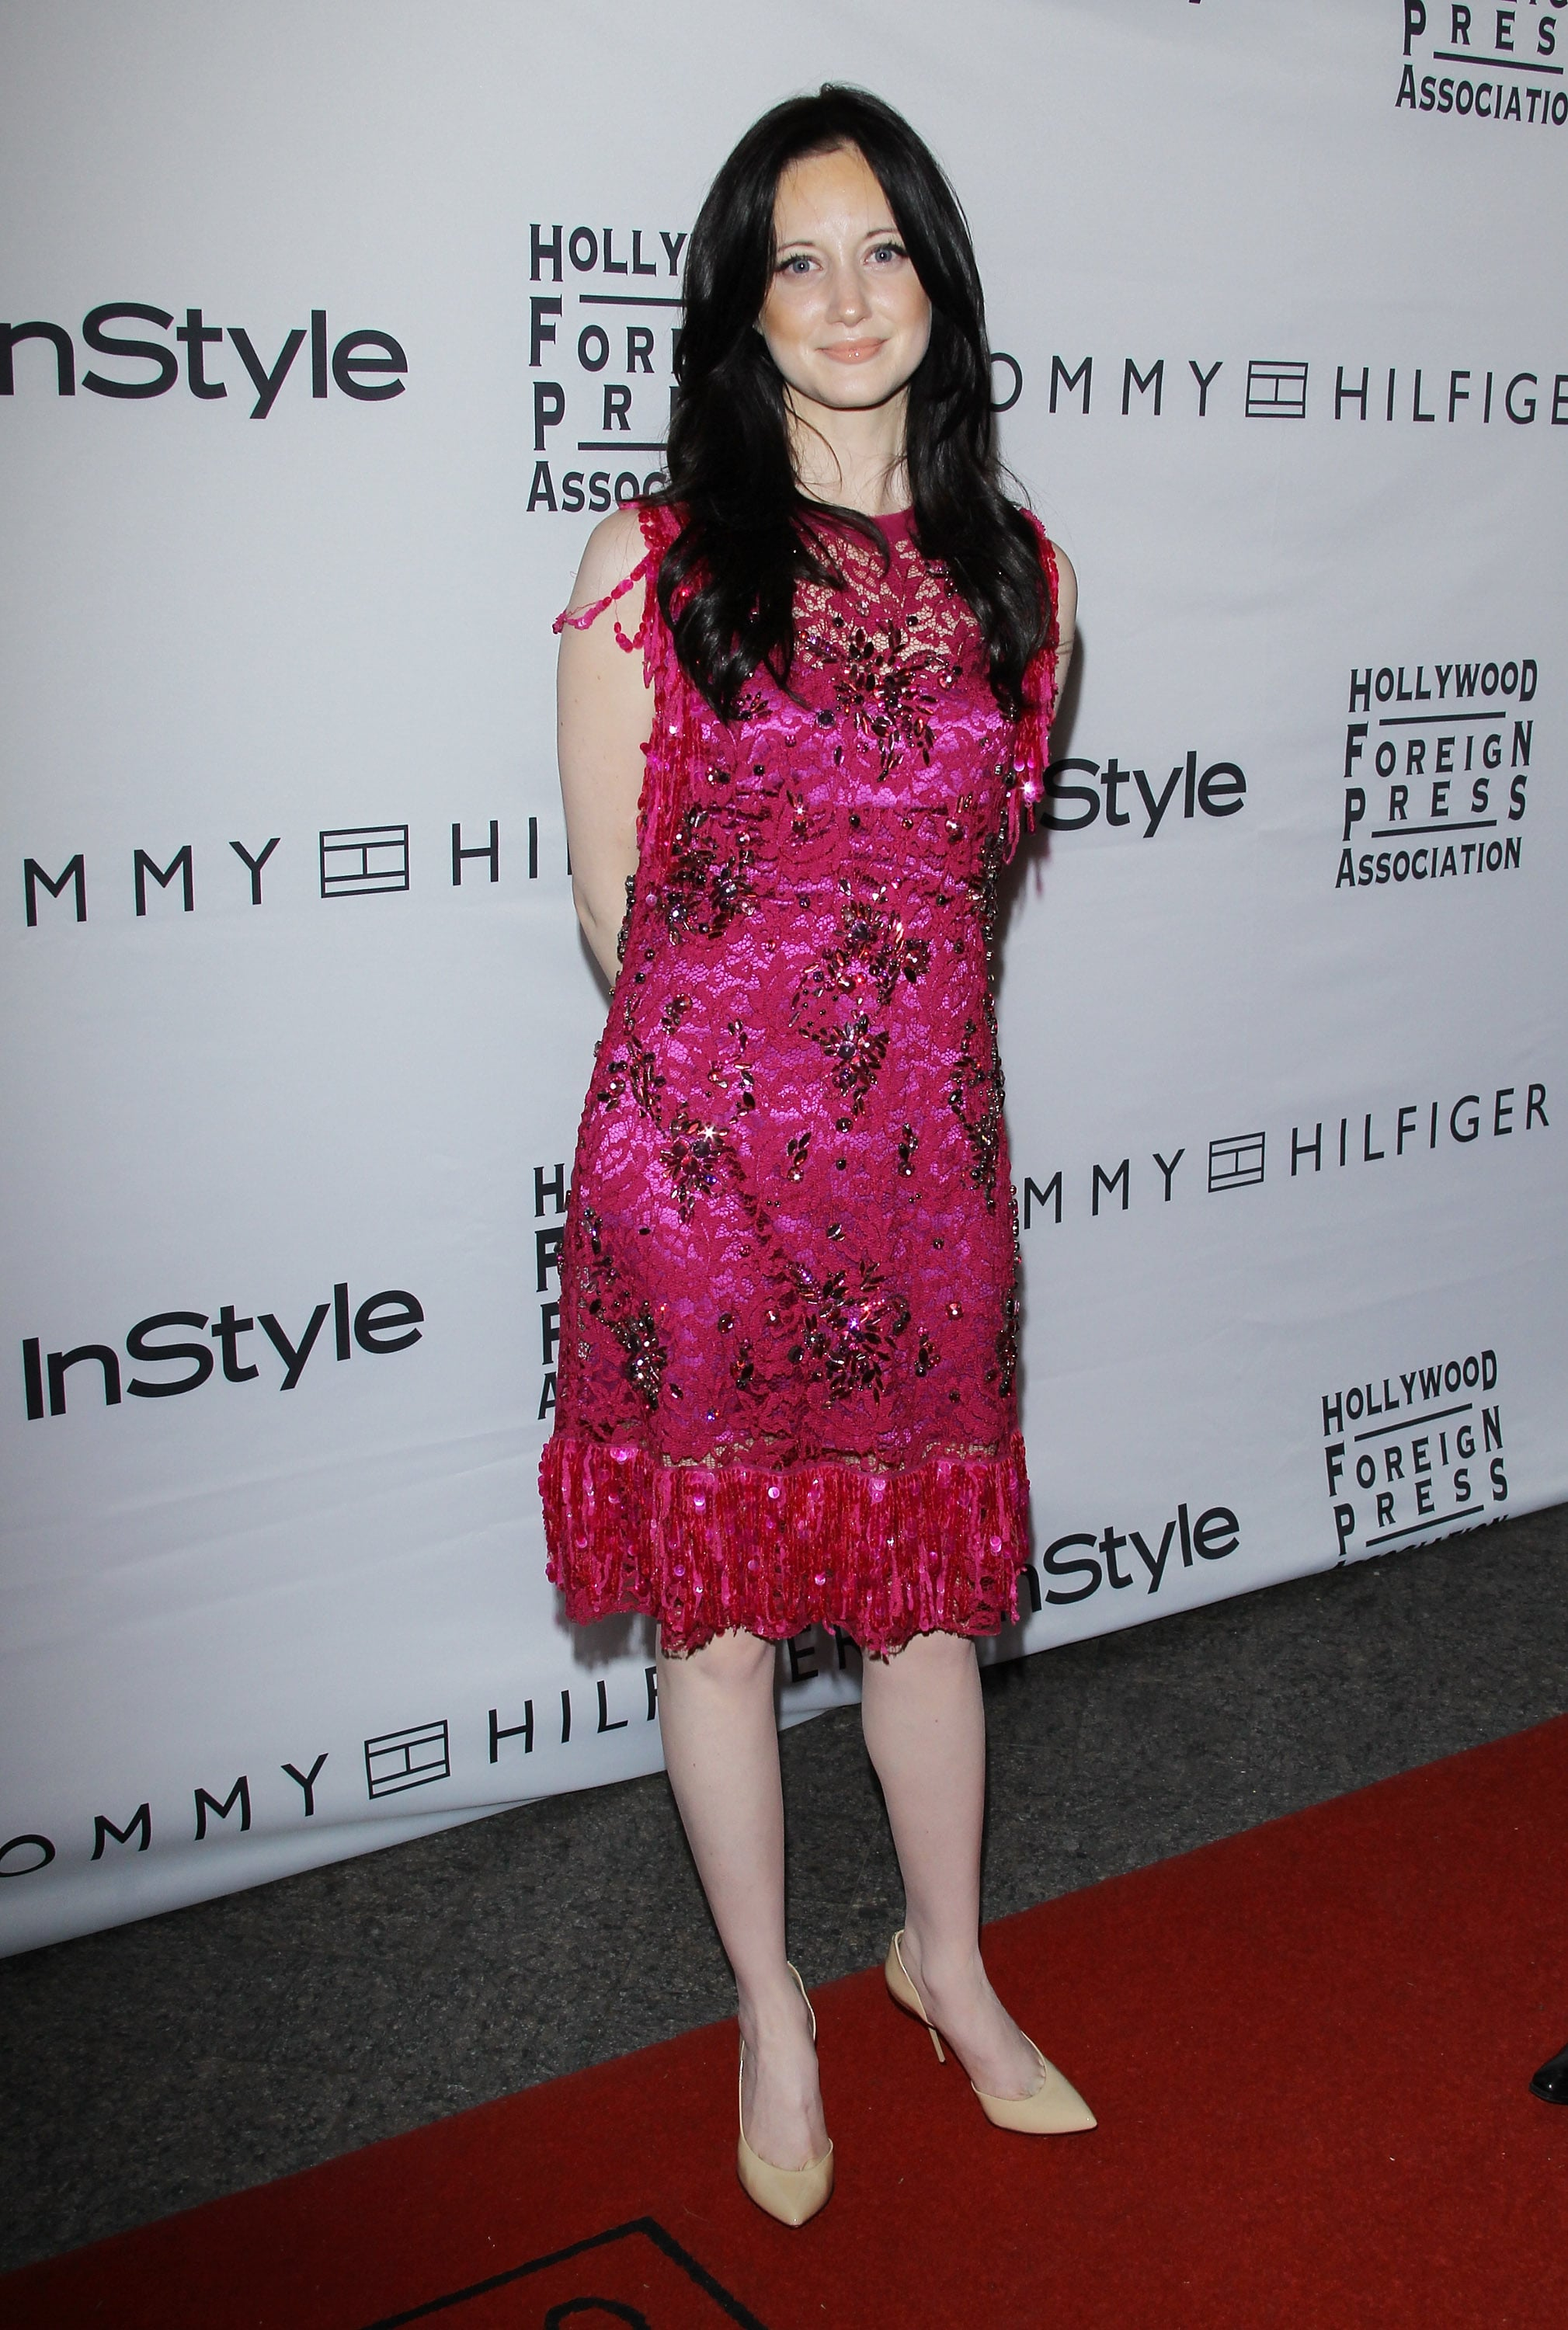 Andrea Riseborough joined InStyle at the Toronto Film Festival in a pretty pink design.